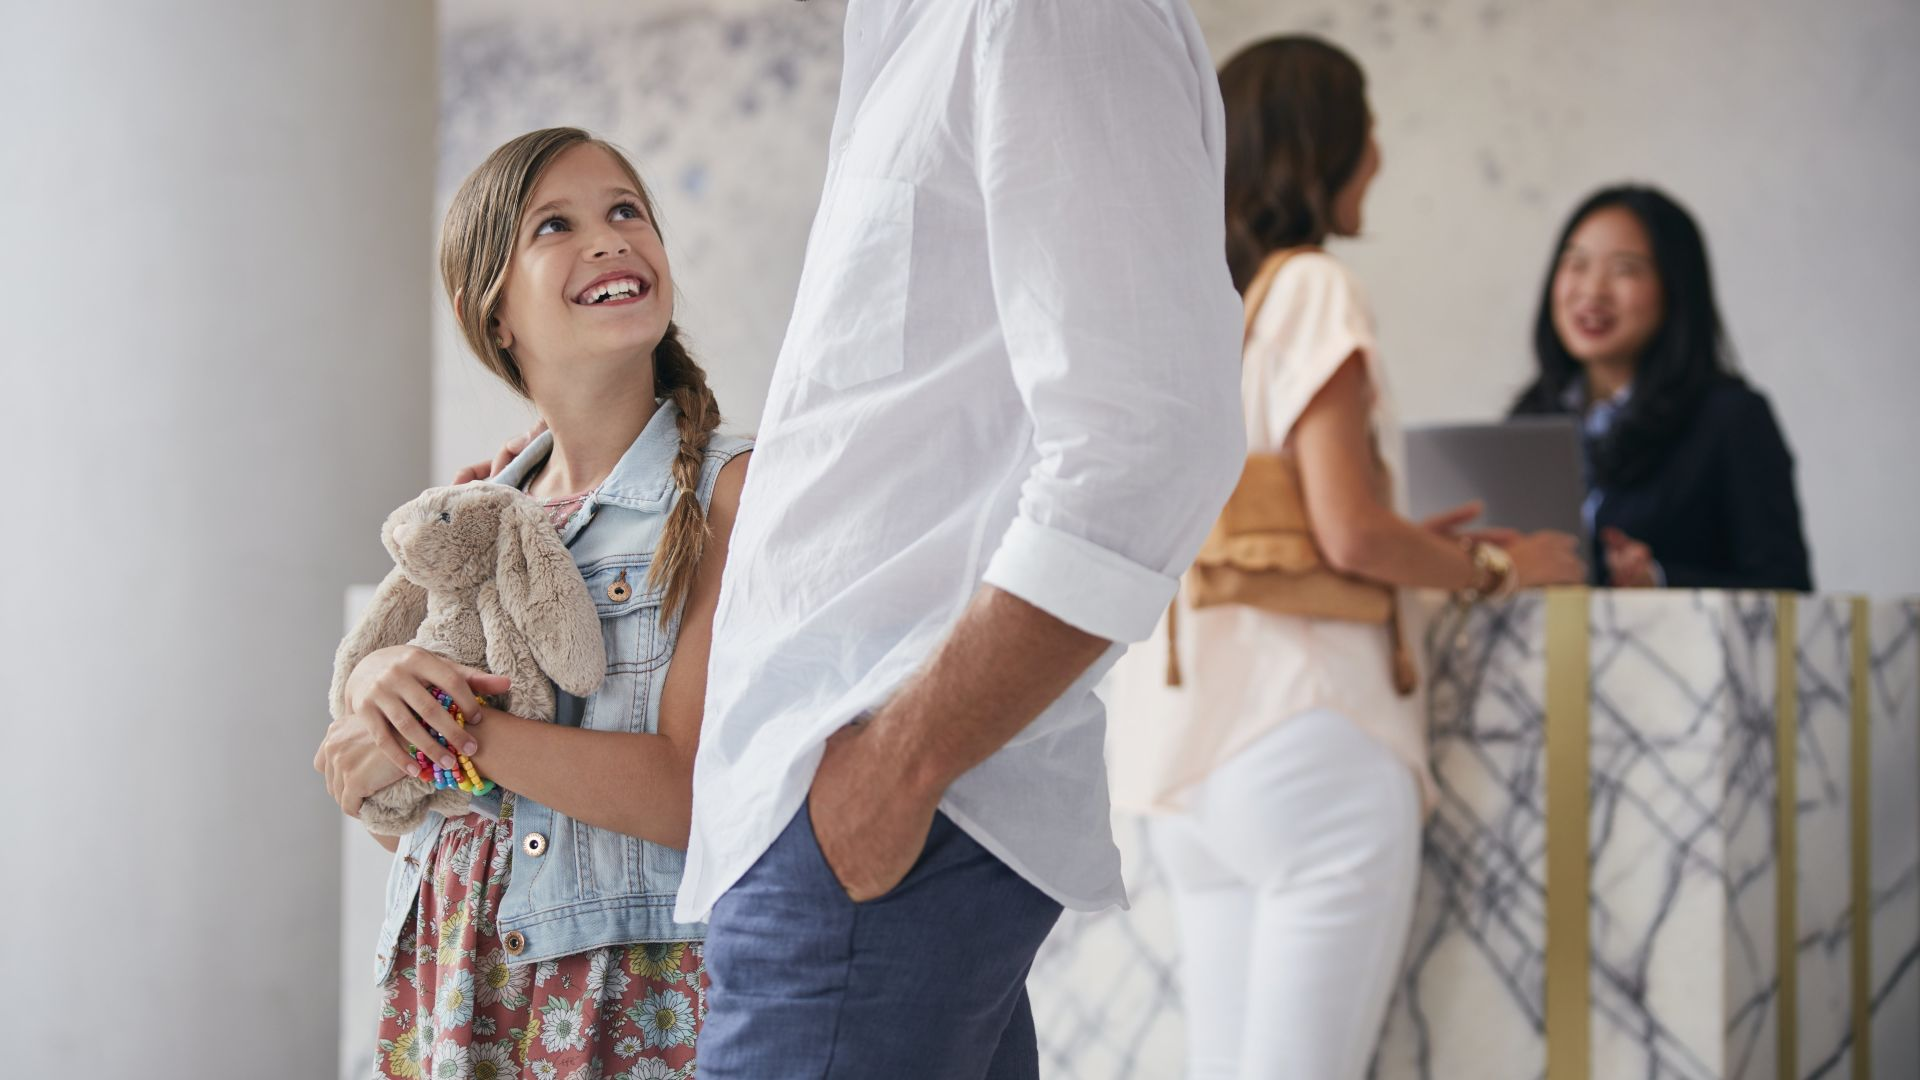 <strong>Loews Loves Families|The whole family is welcome at Loews Hotels</strong>|No stress about where to park|Make Memories